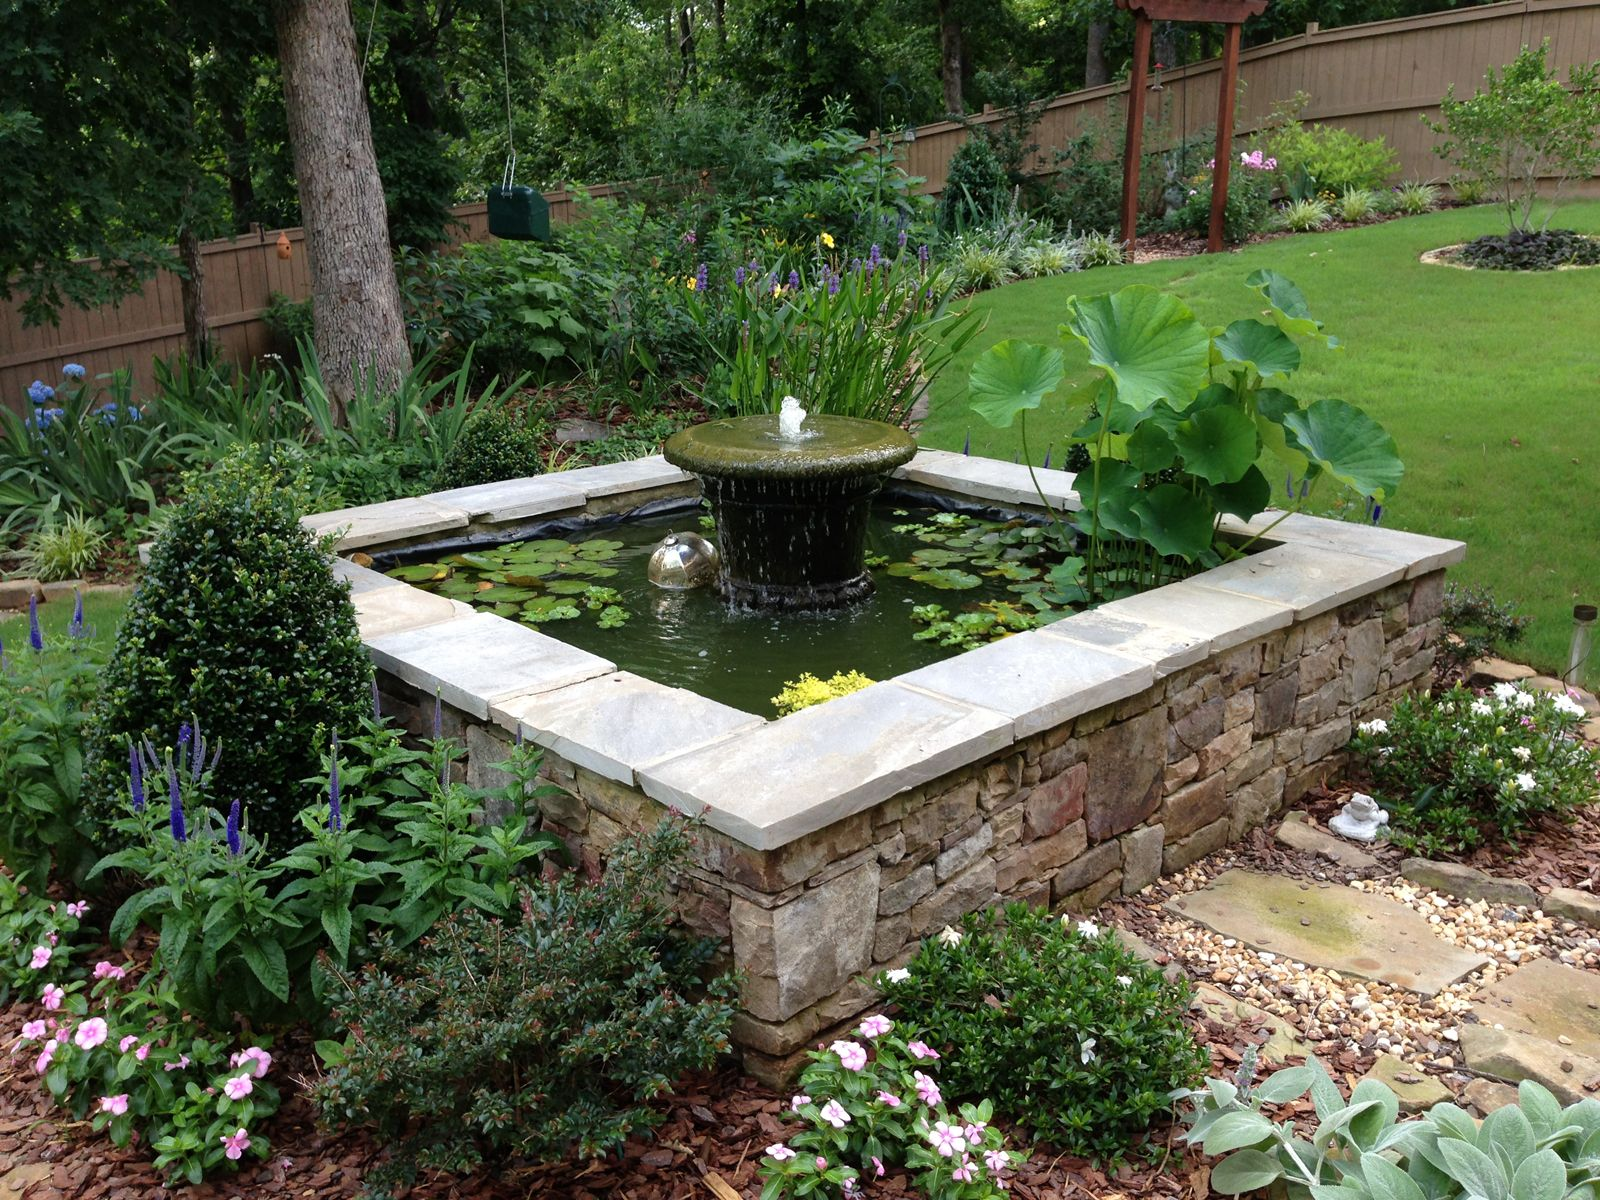 Square water pool carol bill 39 s garden in georgia for Above ground pond ideas